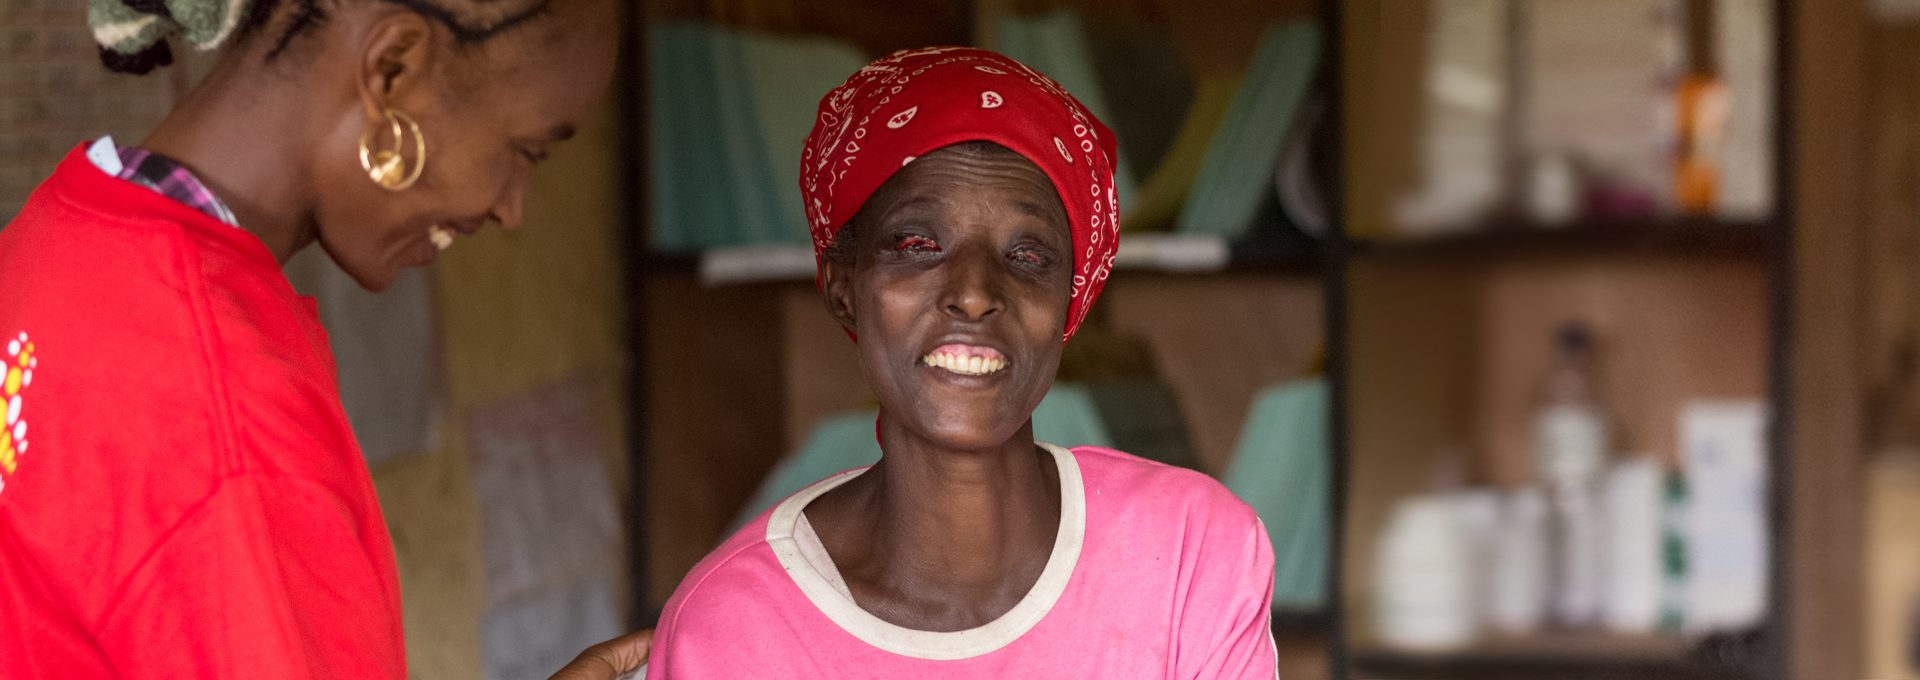 Bedecha's eyelashes have turned inwards due to repeated trachoma infections.